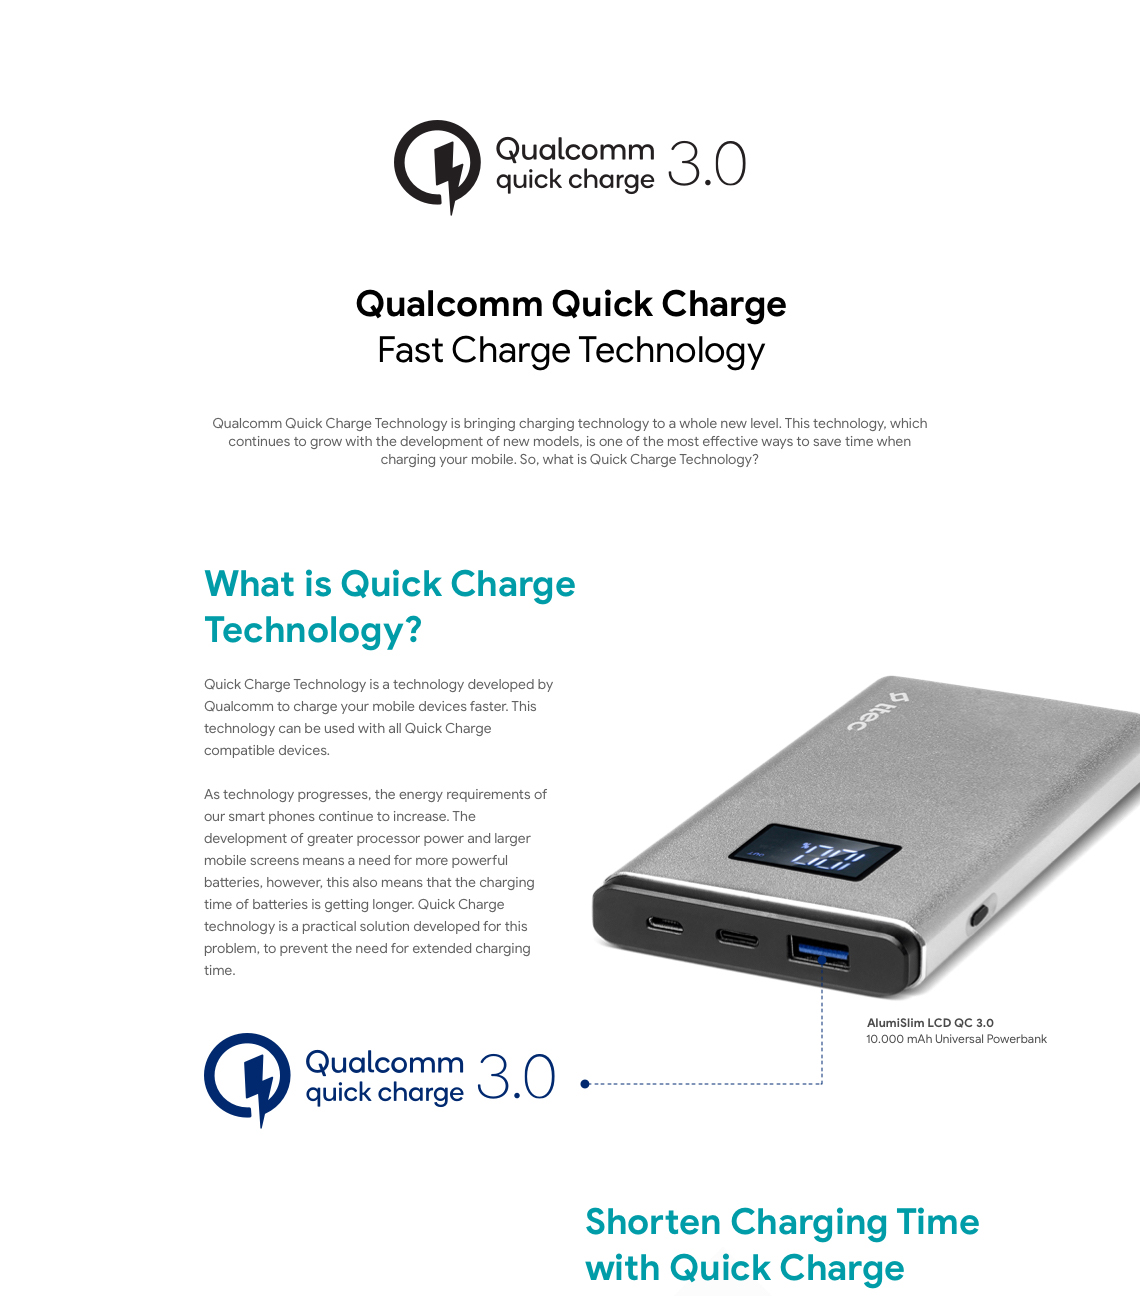 What is quickcharge 3.0 technology